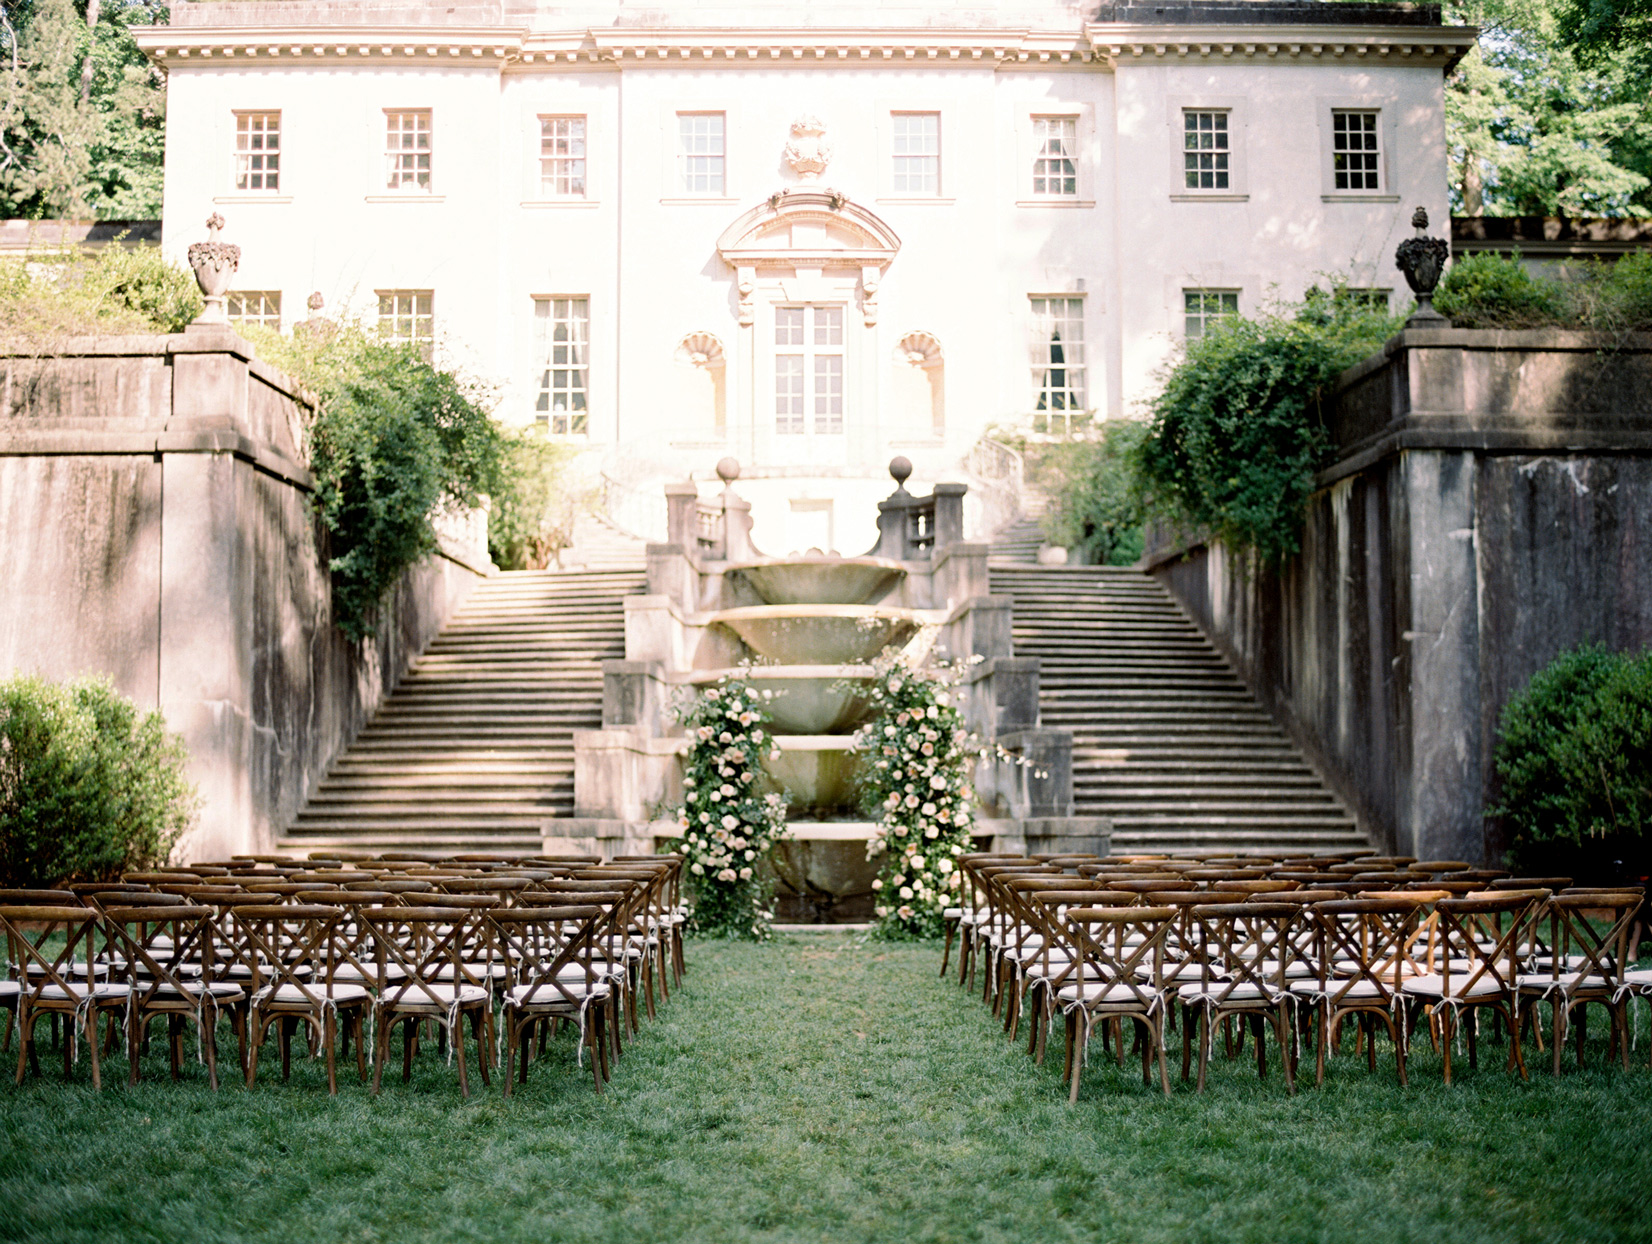 outdoor wedding ceremony setup stone staircases and draping greenery